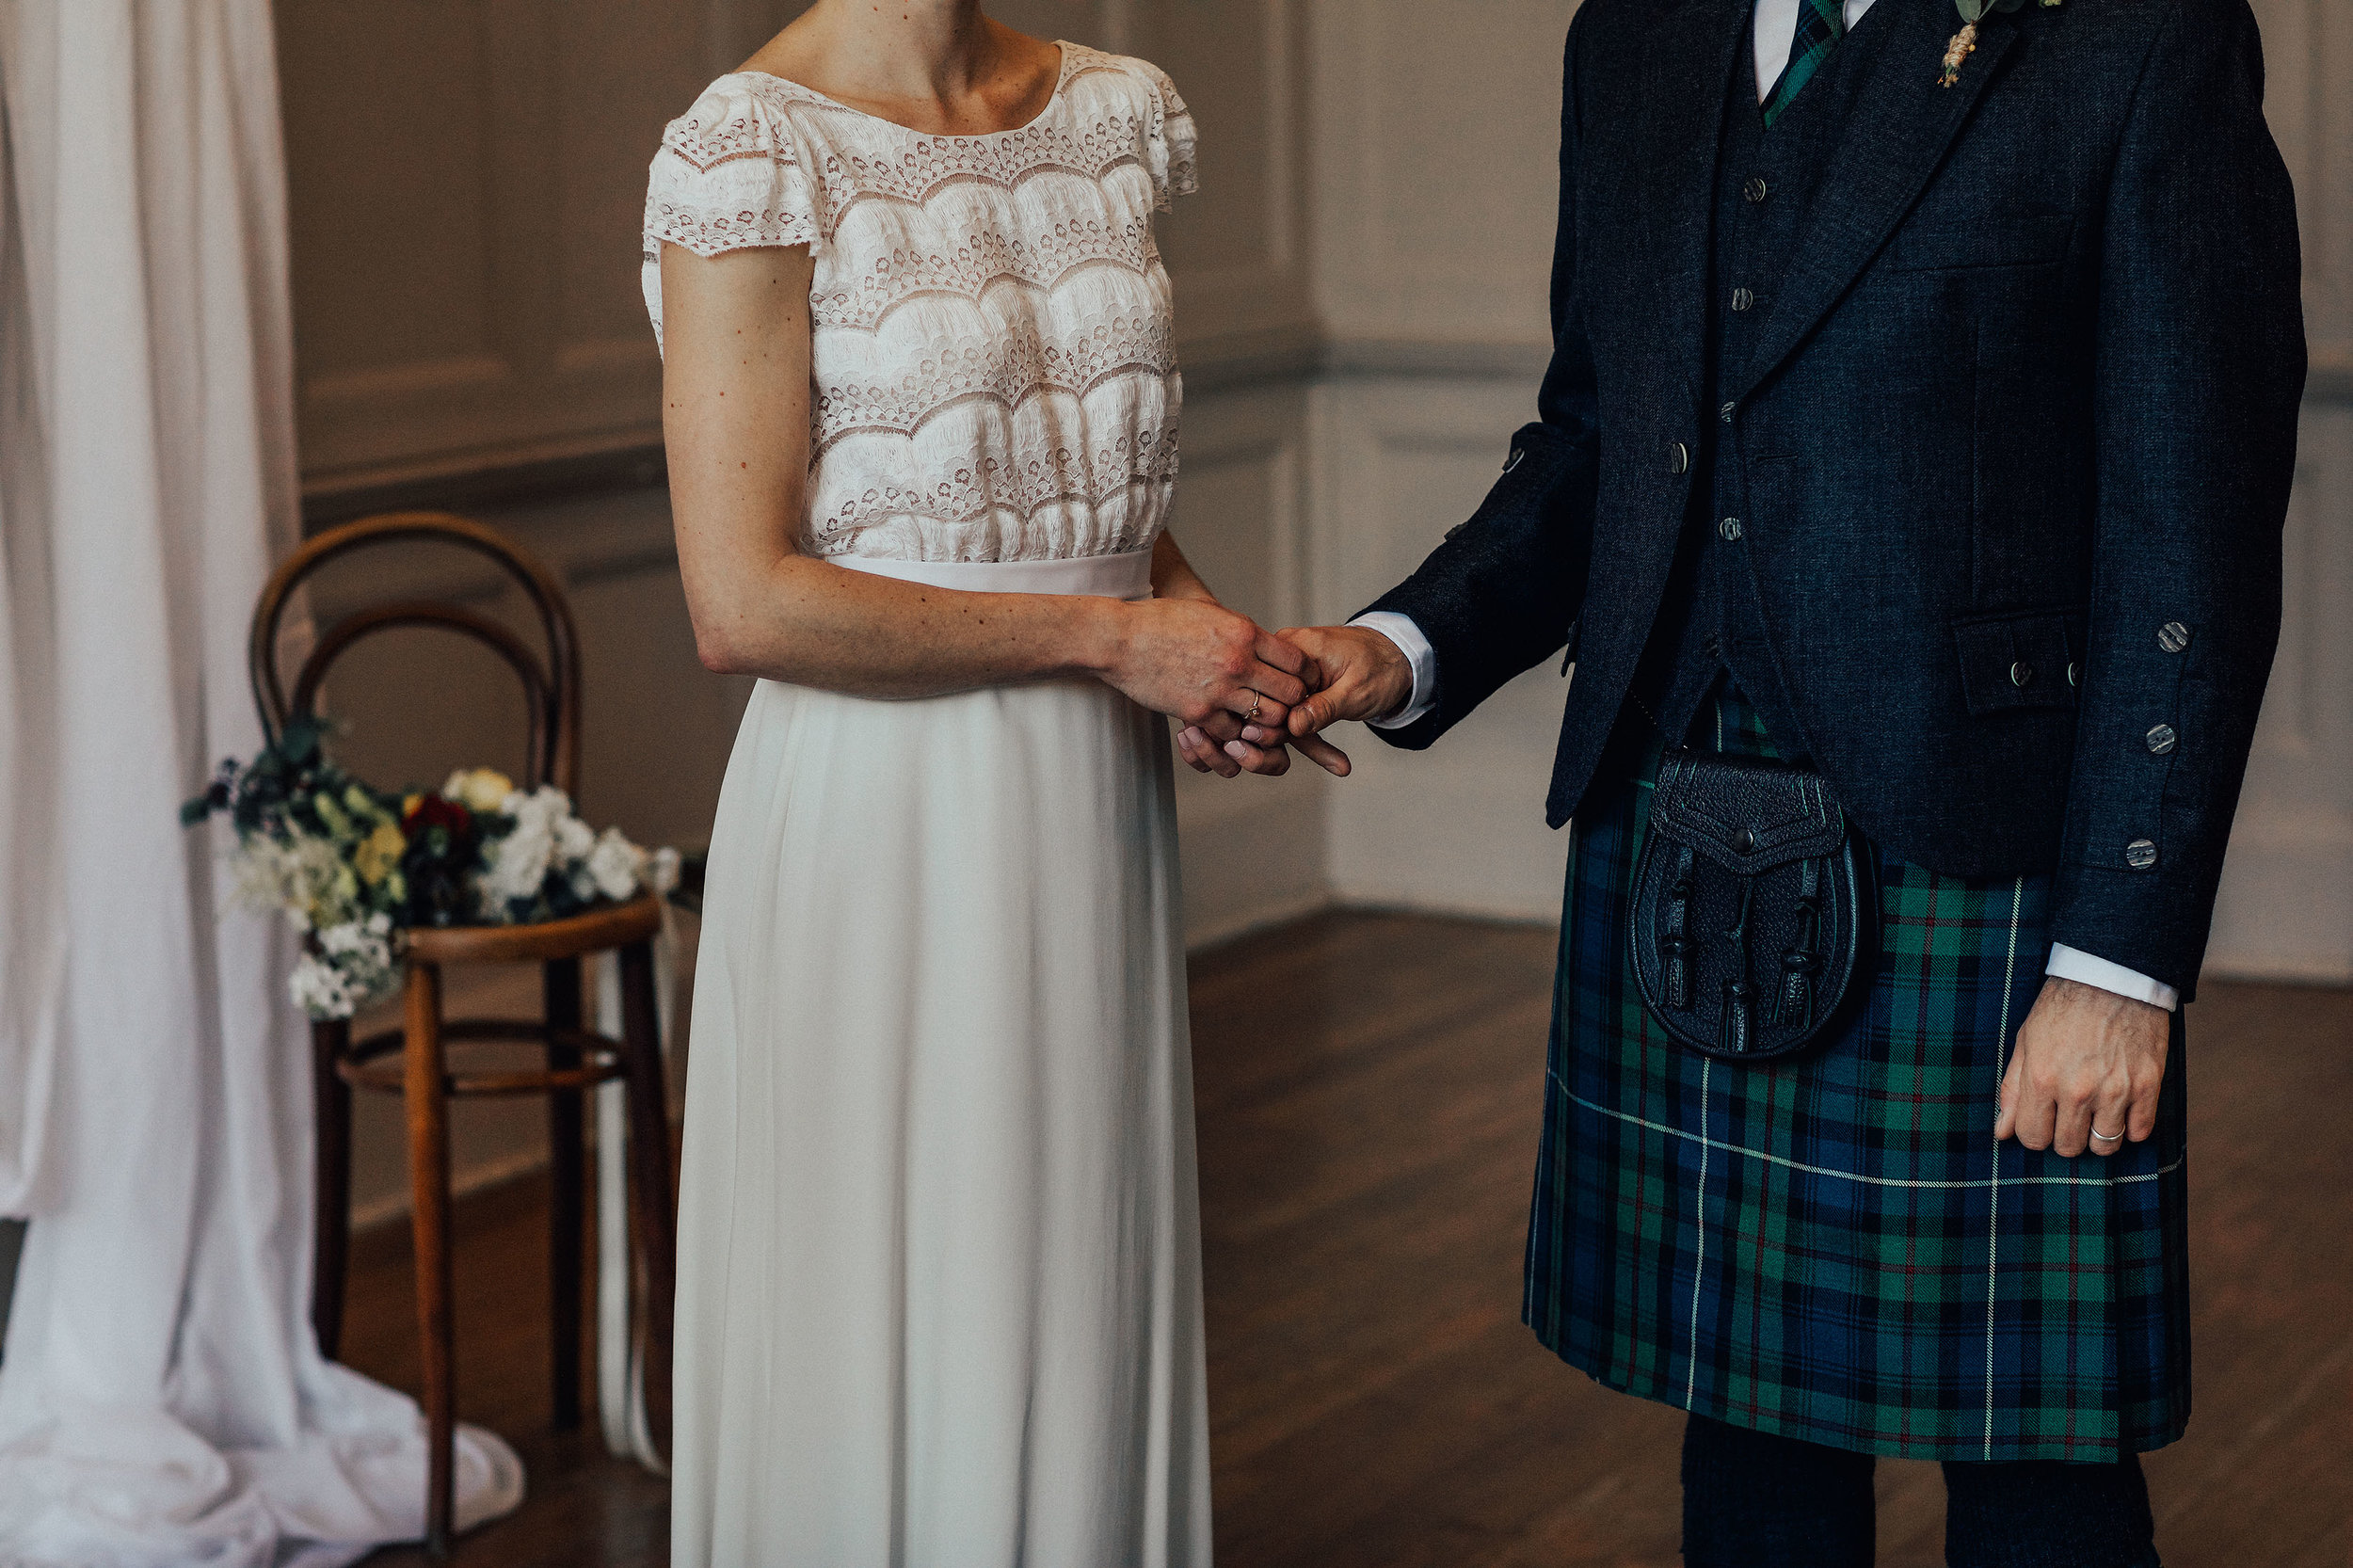 TIMBERYARD_EDINBURGH_WEDDING_PJ_PHILLIPS_PHOTOGRAPHY_77.jpg